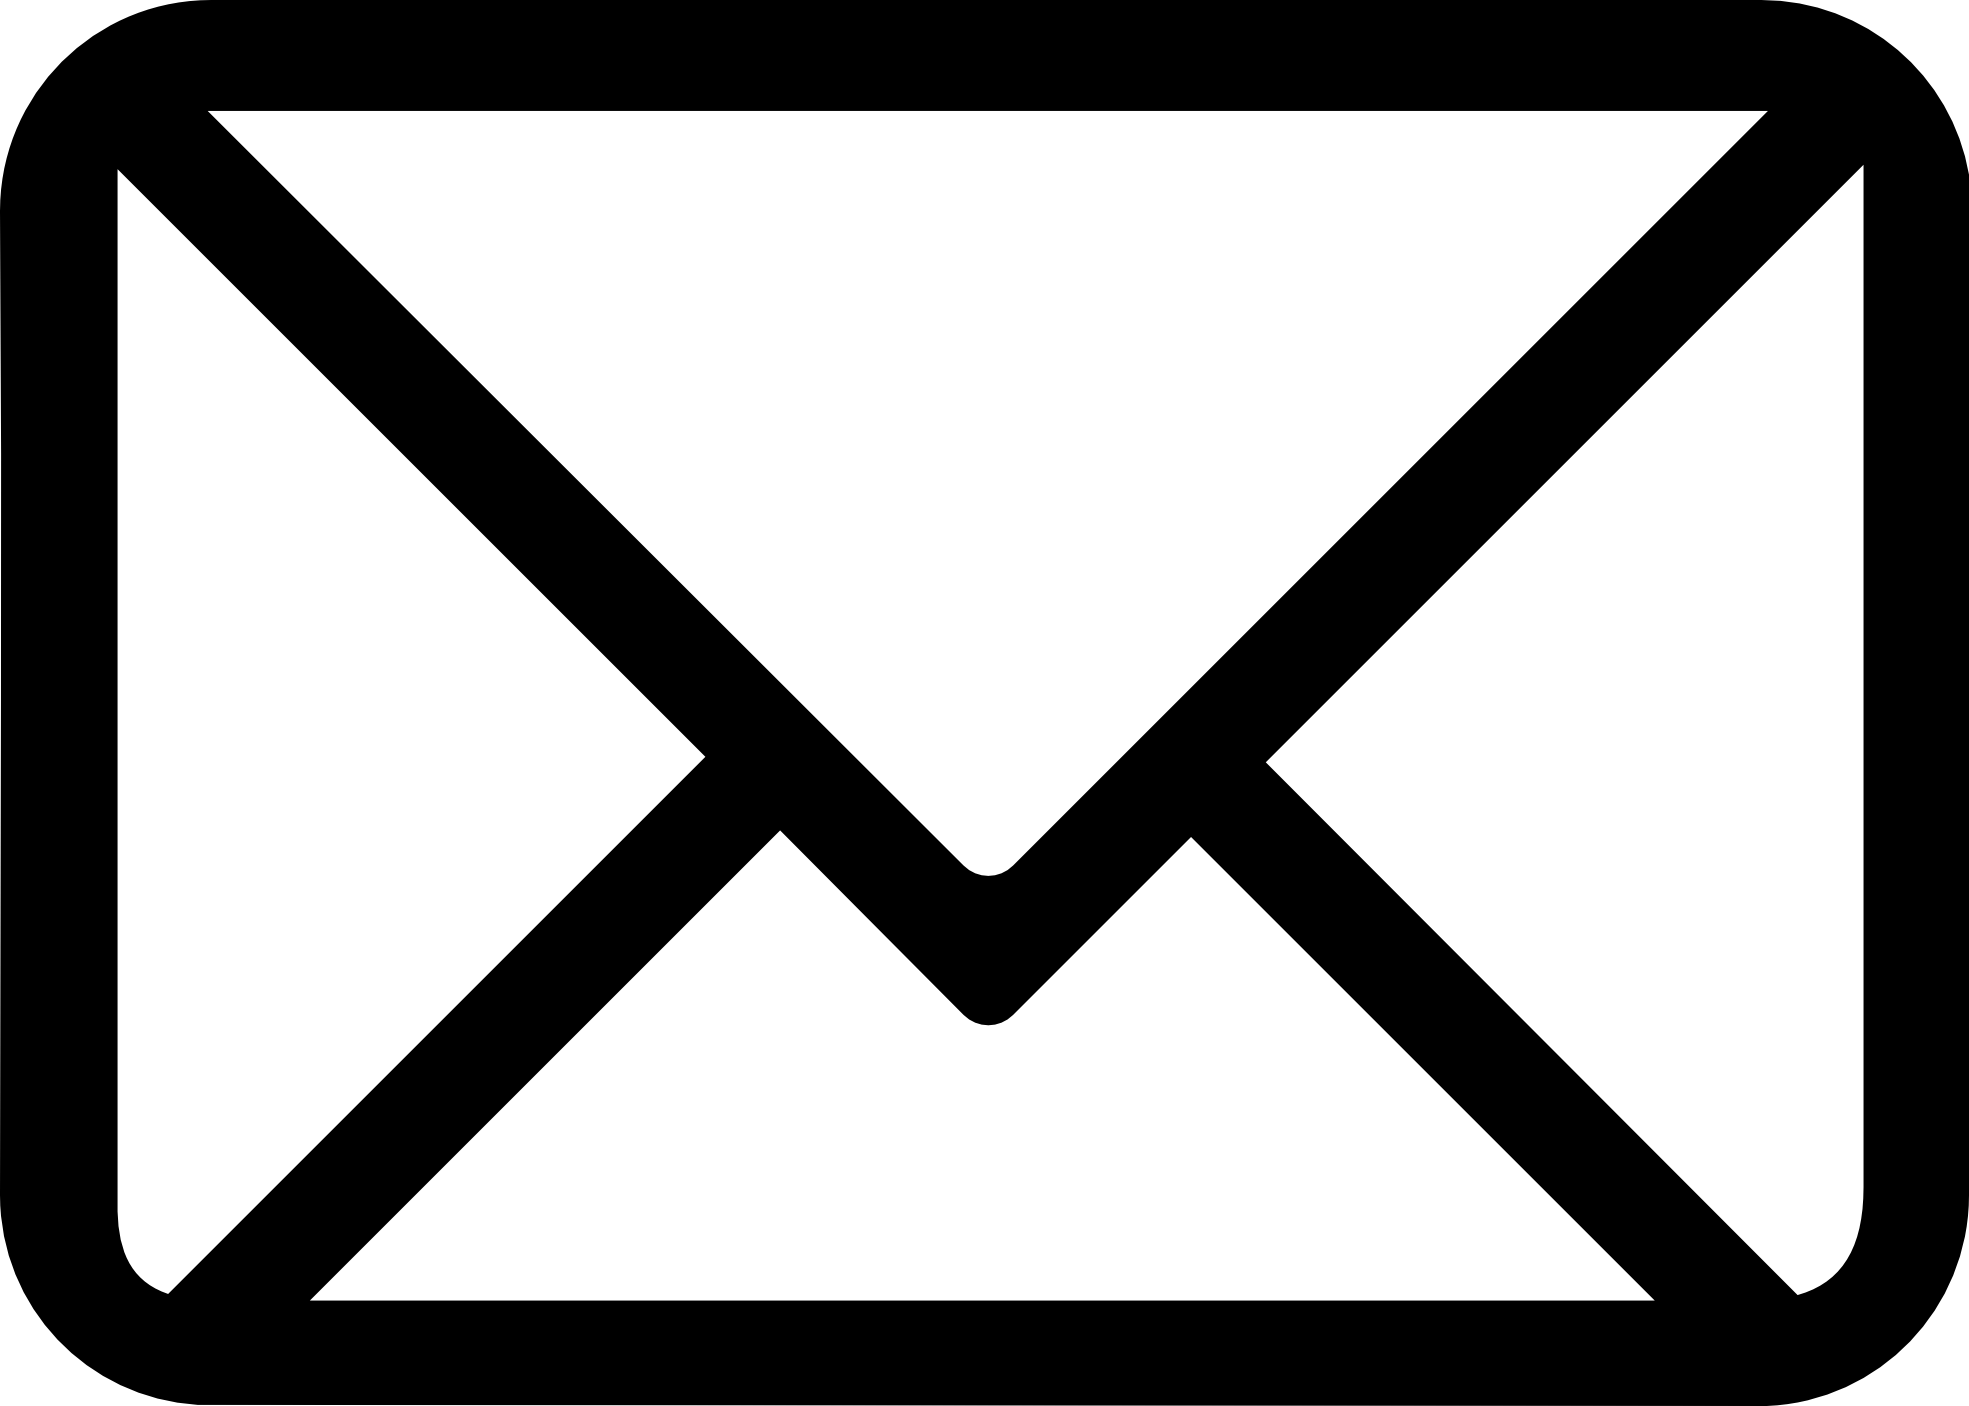 Best HD Mail Icon Transparent Vector File Free - Email HD PNG